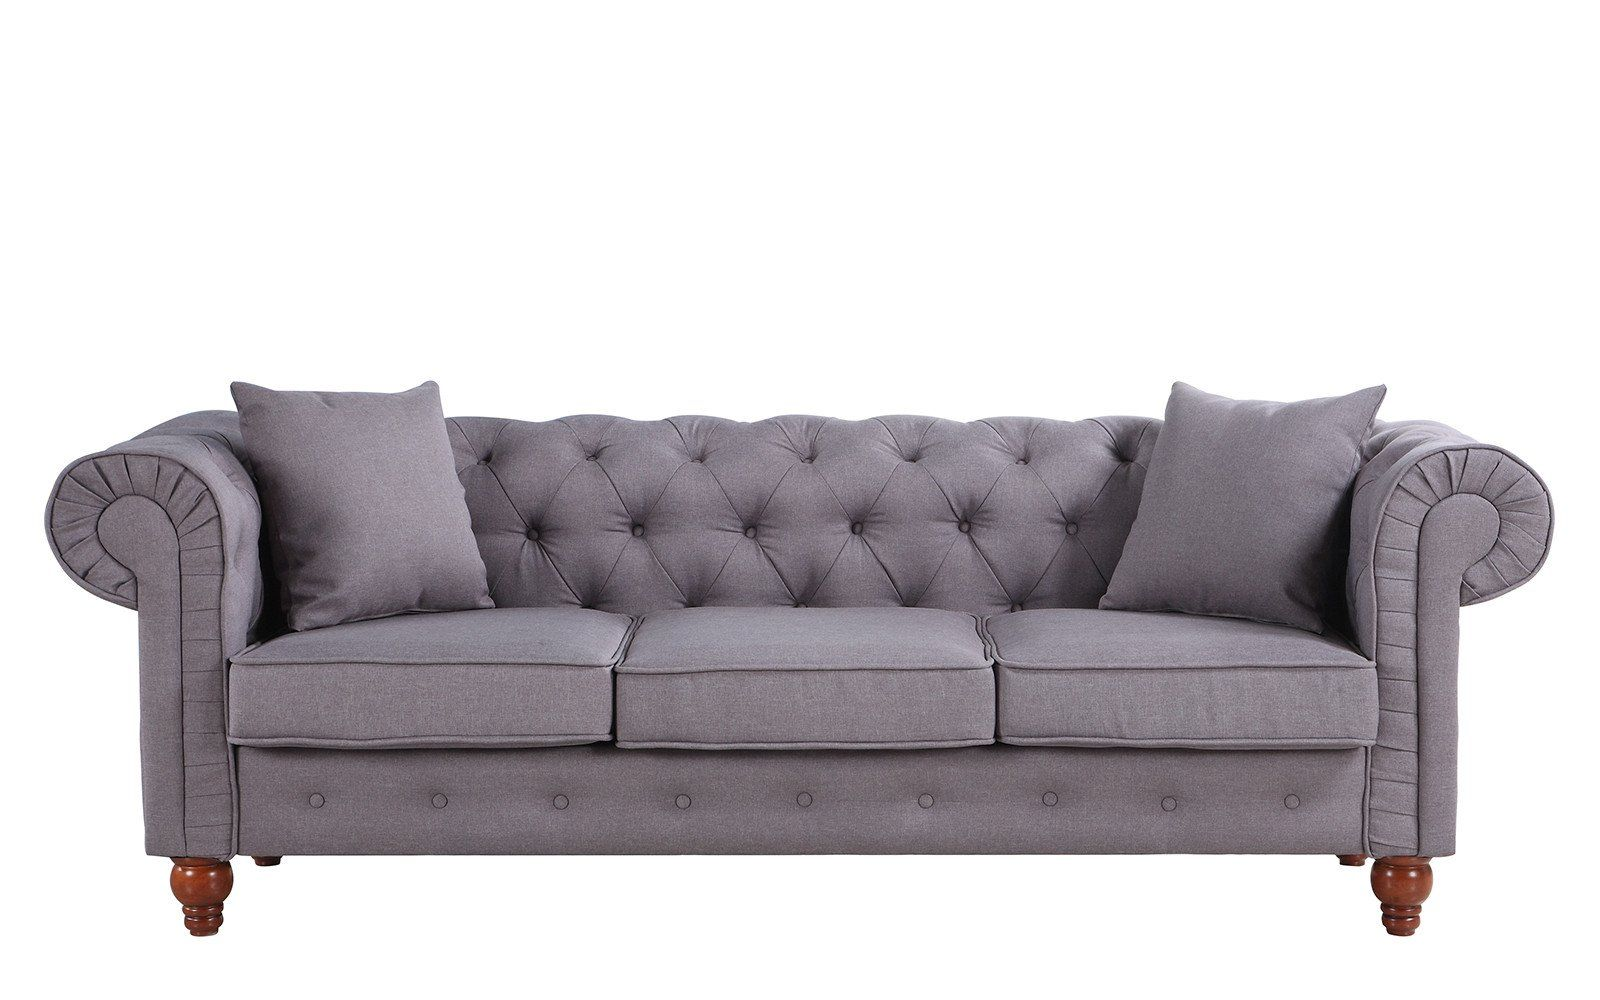 Stratford Classic Grey Fabric Chesterfield Sofa | Living Room ...